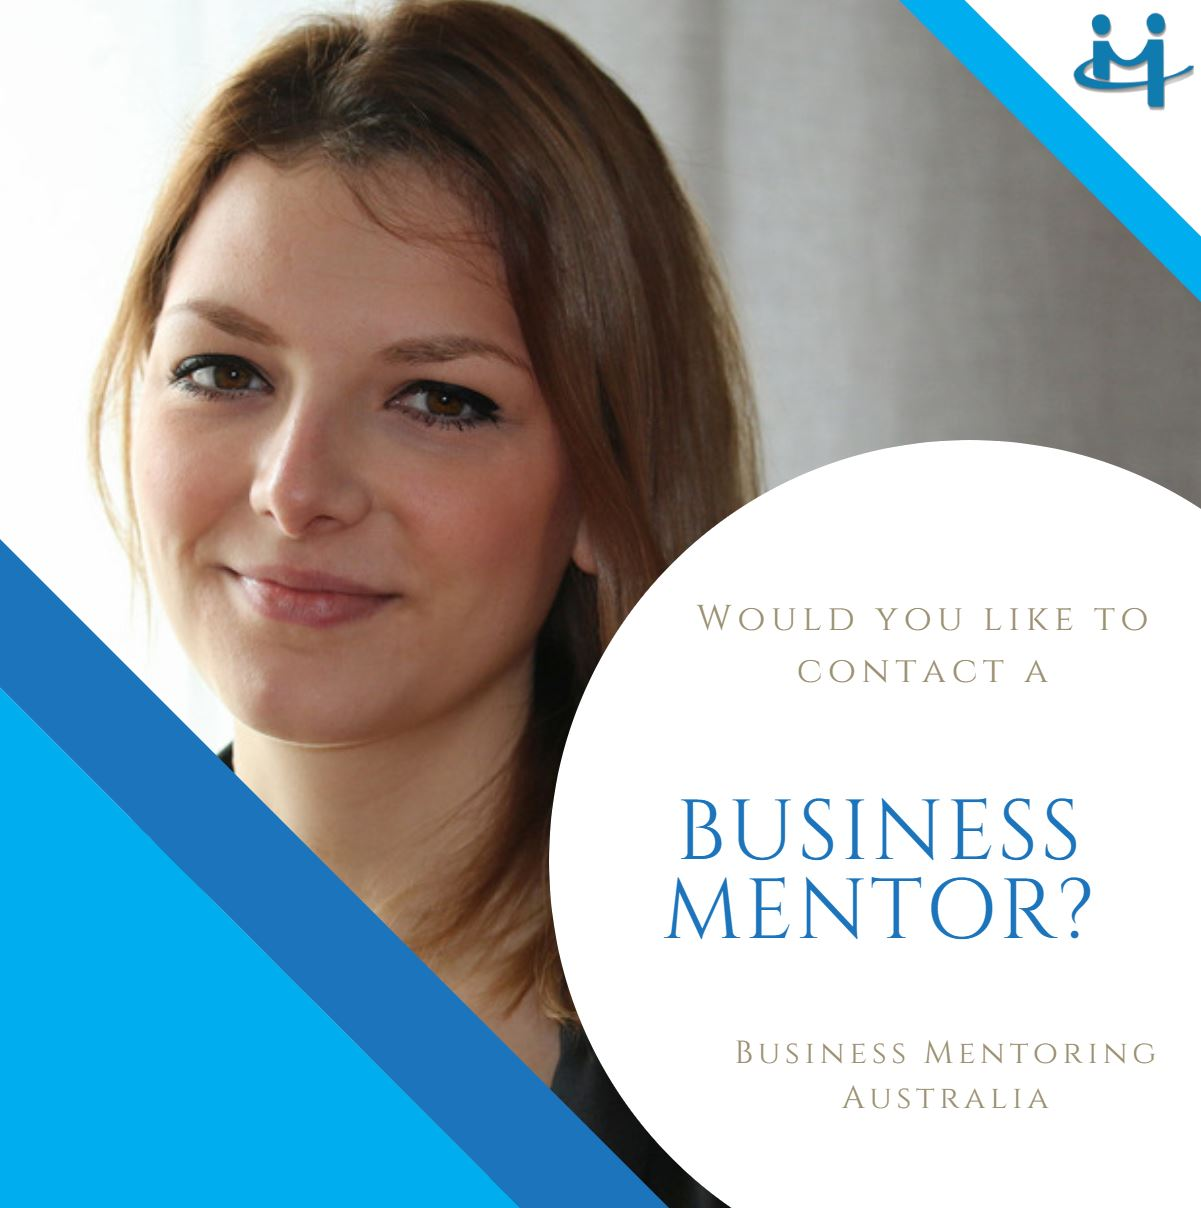 Contact a Business mentor